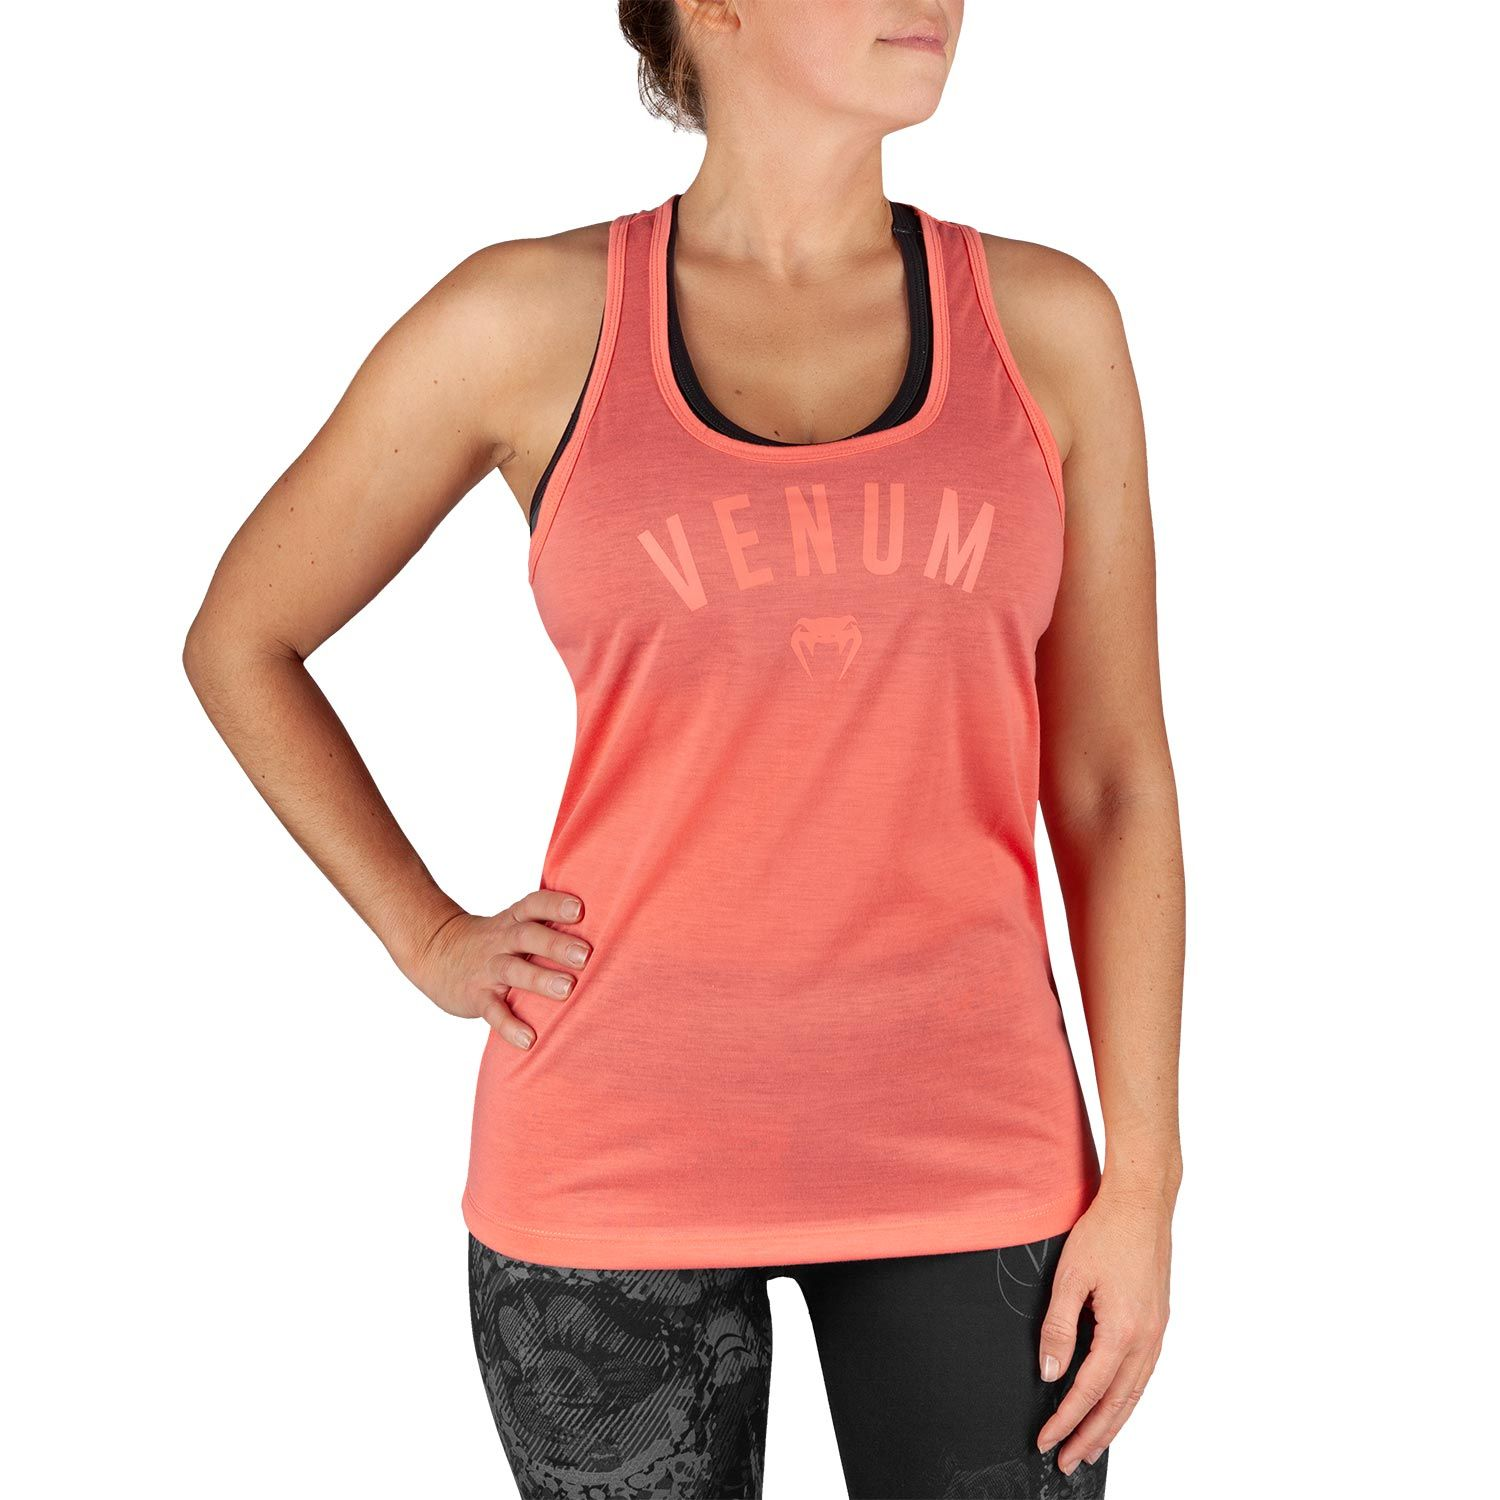 Venum Classic Tank Top - For Women - Pink